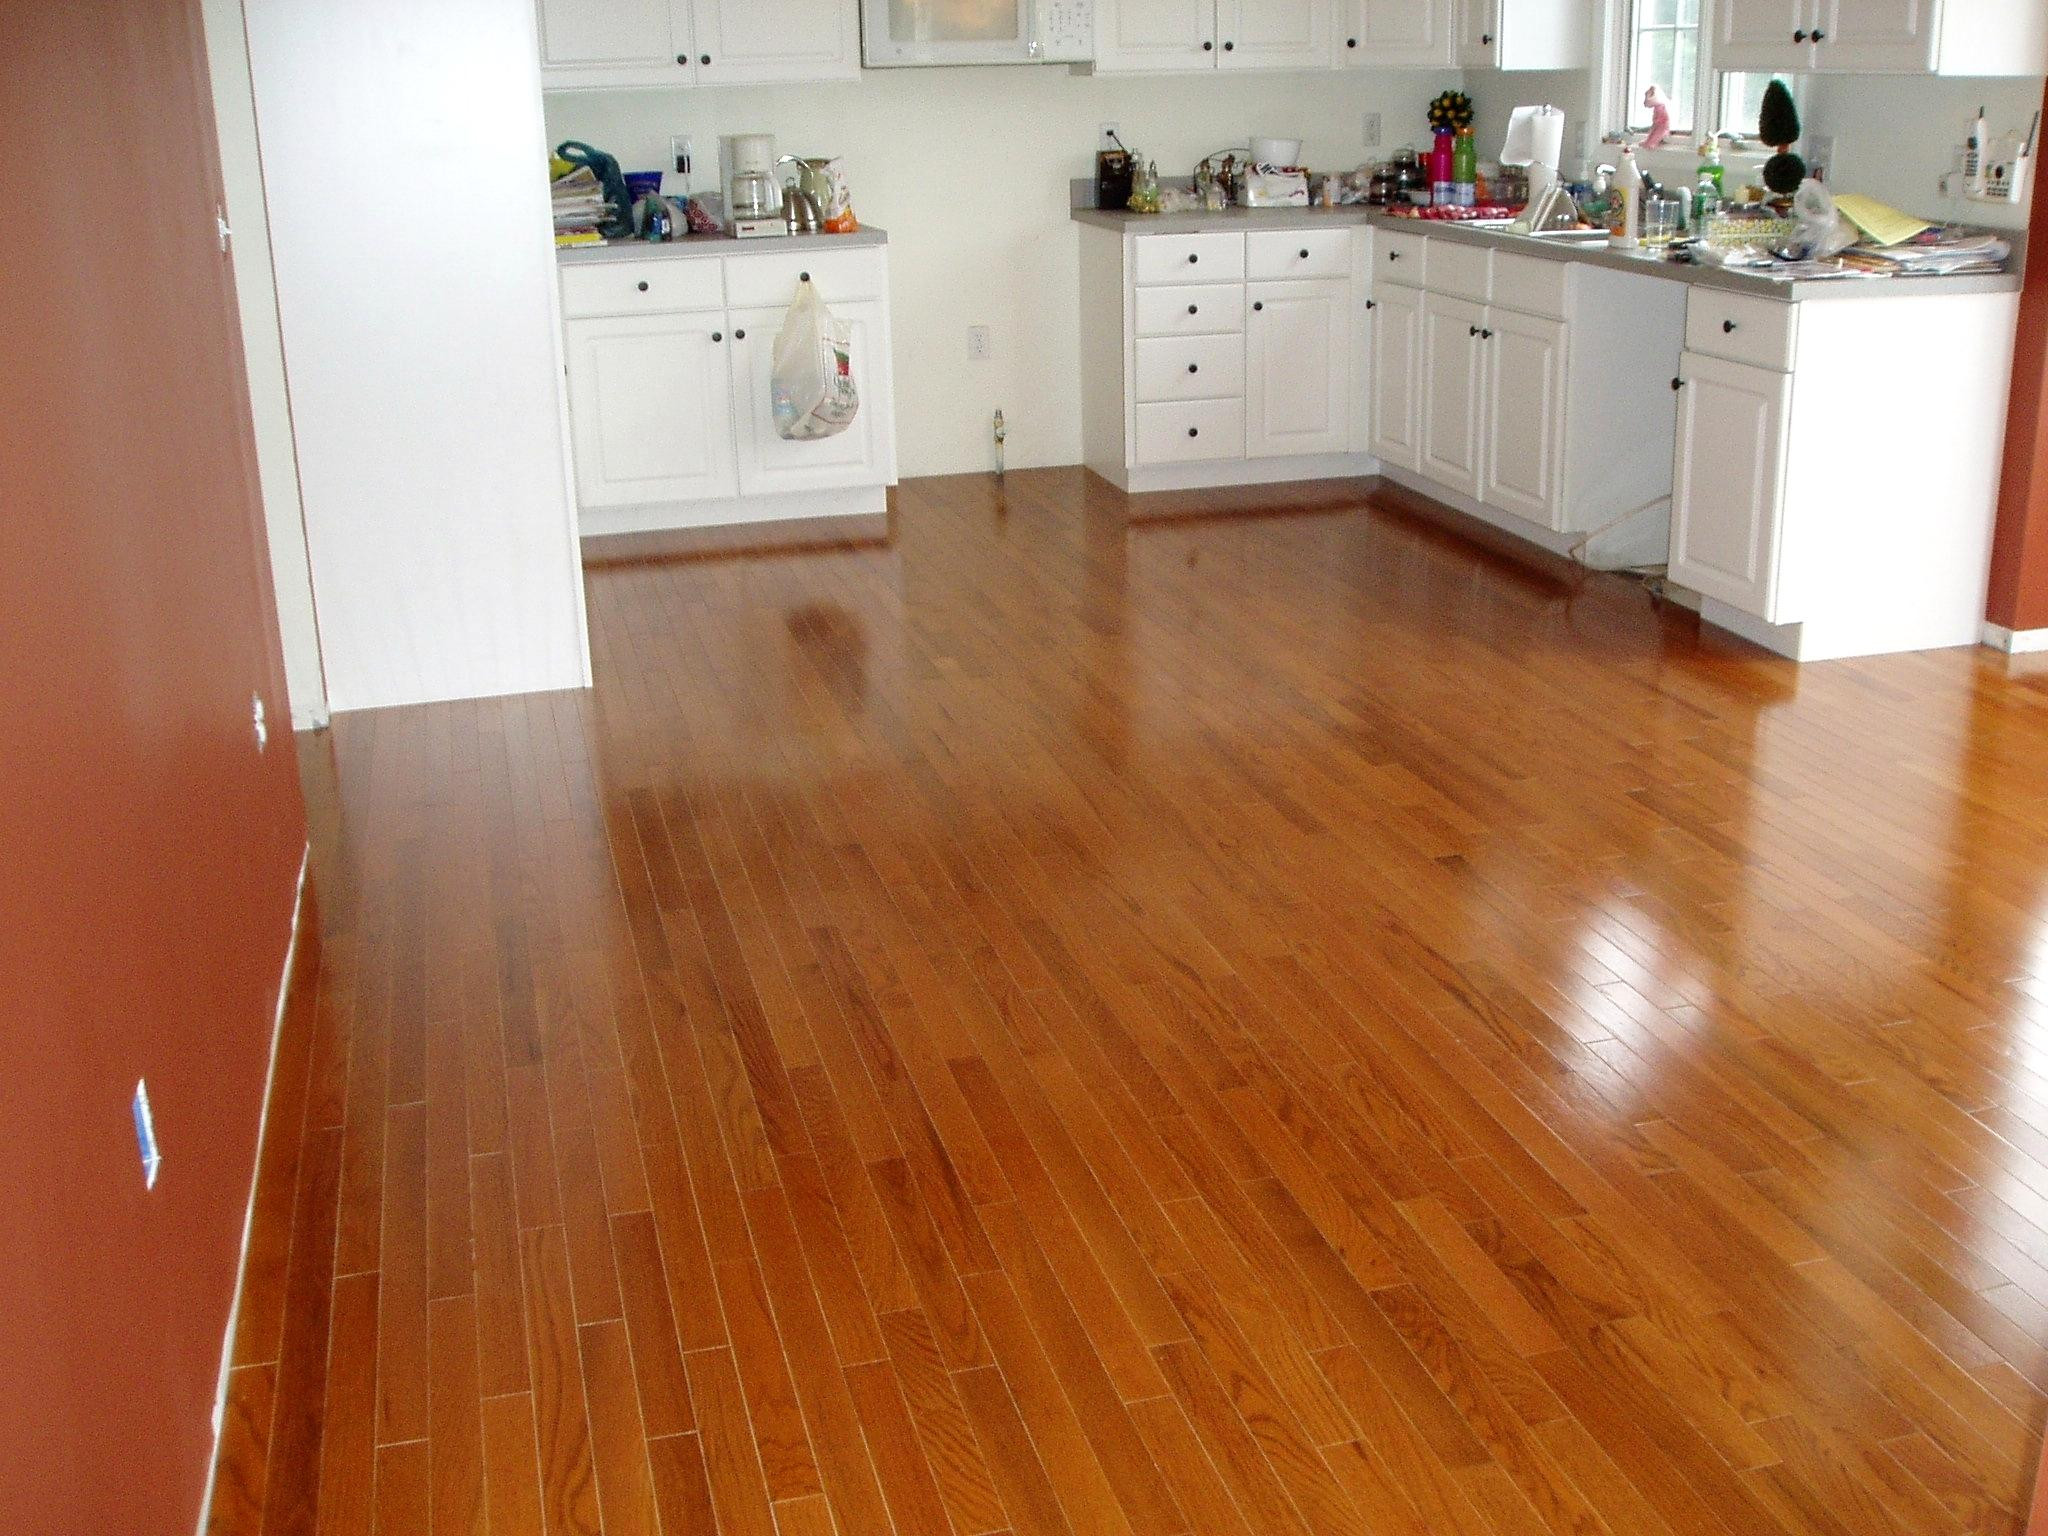 Cheap Bruce Hardwood Flooring Of Luxuriant Kitchen Design Bruce Hardwood Floors Ideas Binet for with Regard to Luxuriant Kitchen Design Bruce Hardwood Floors Ideas Binet for Kitchen Decor Ideas Bruce Hardwood Floor Cleaner Bruce Hardwood Floors butterscotch Bruce